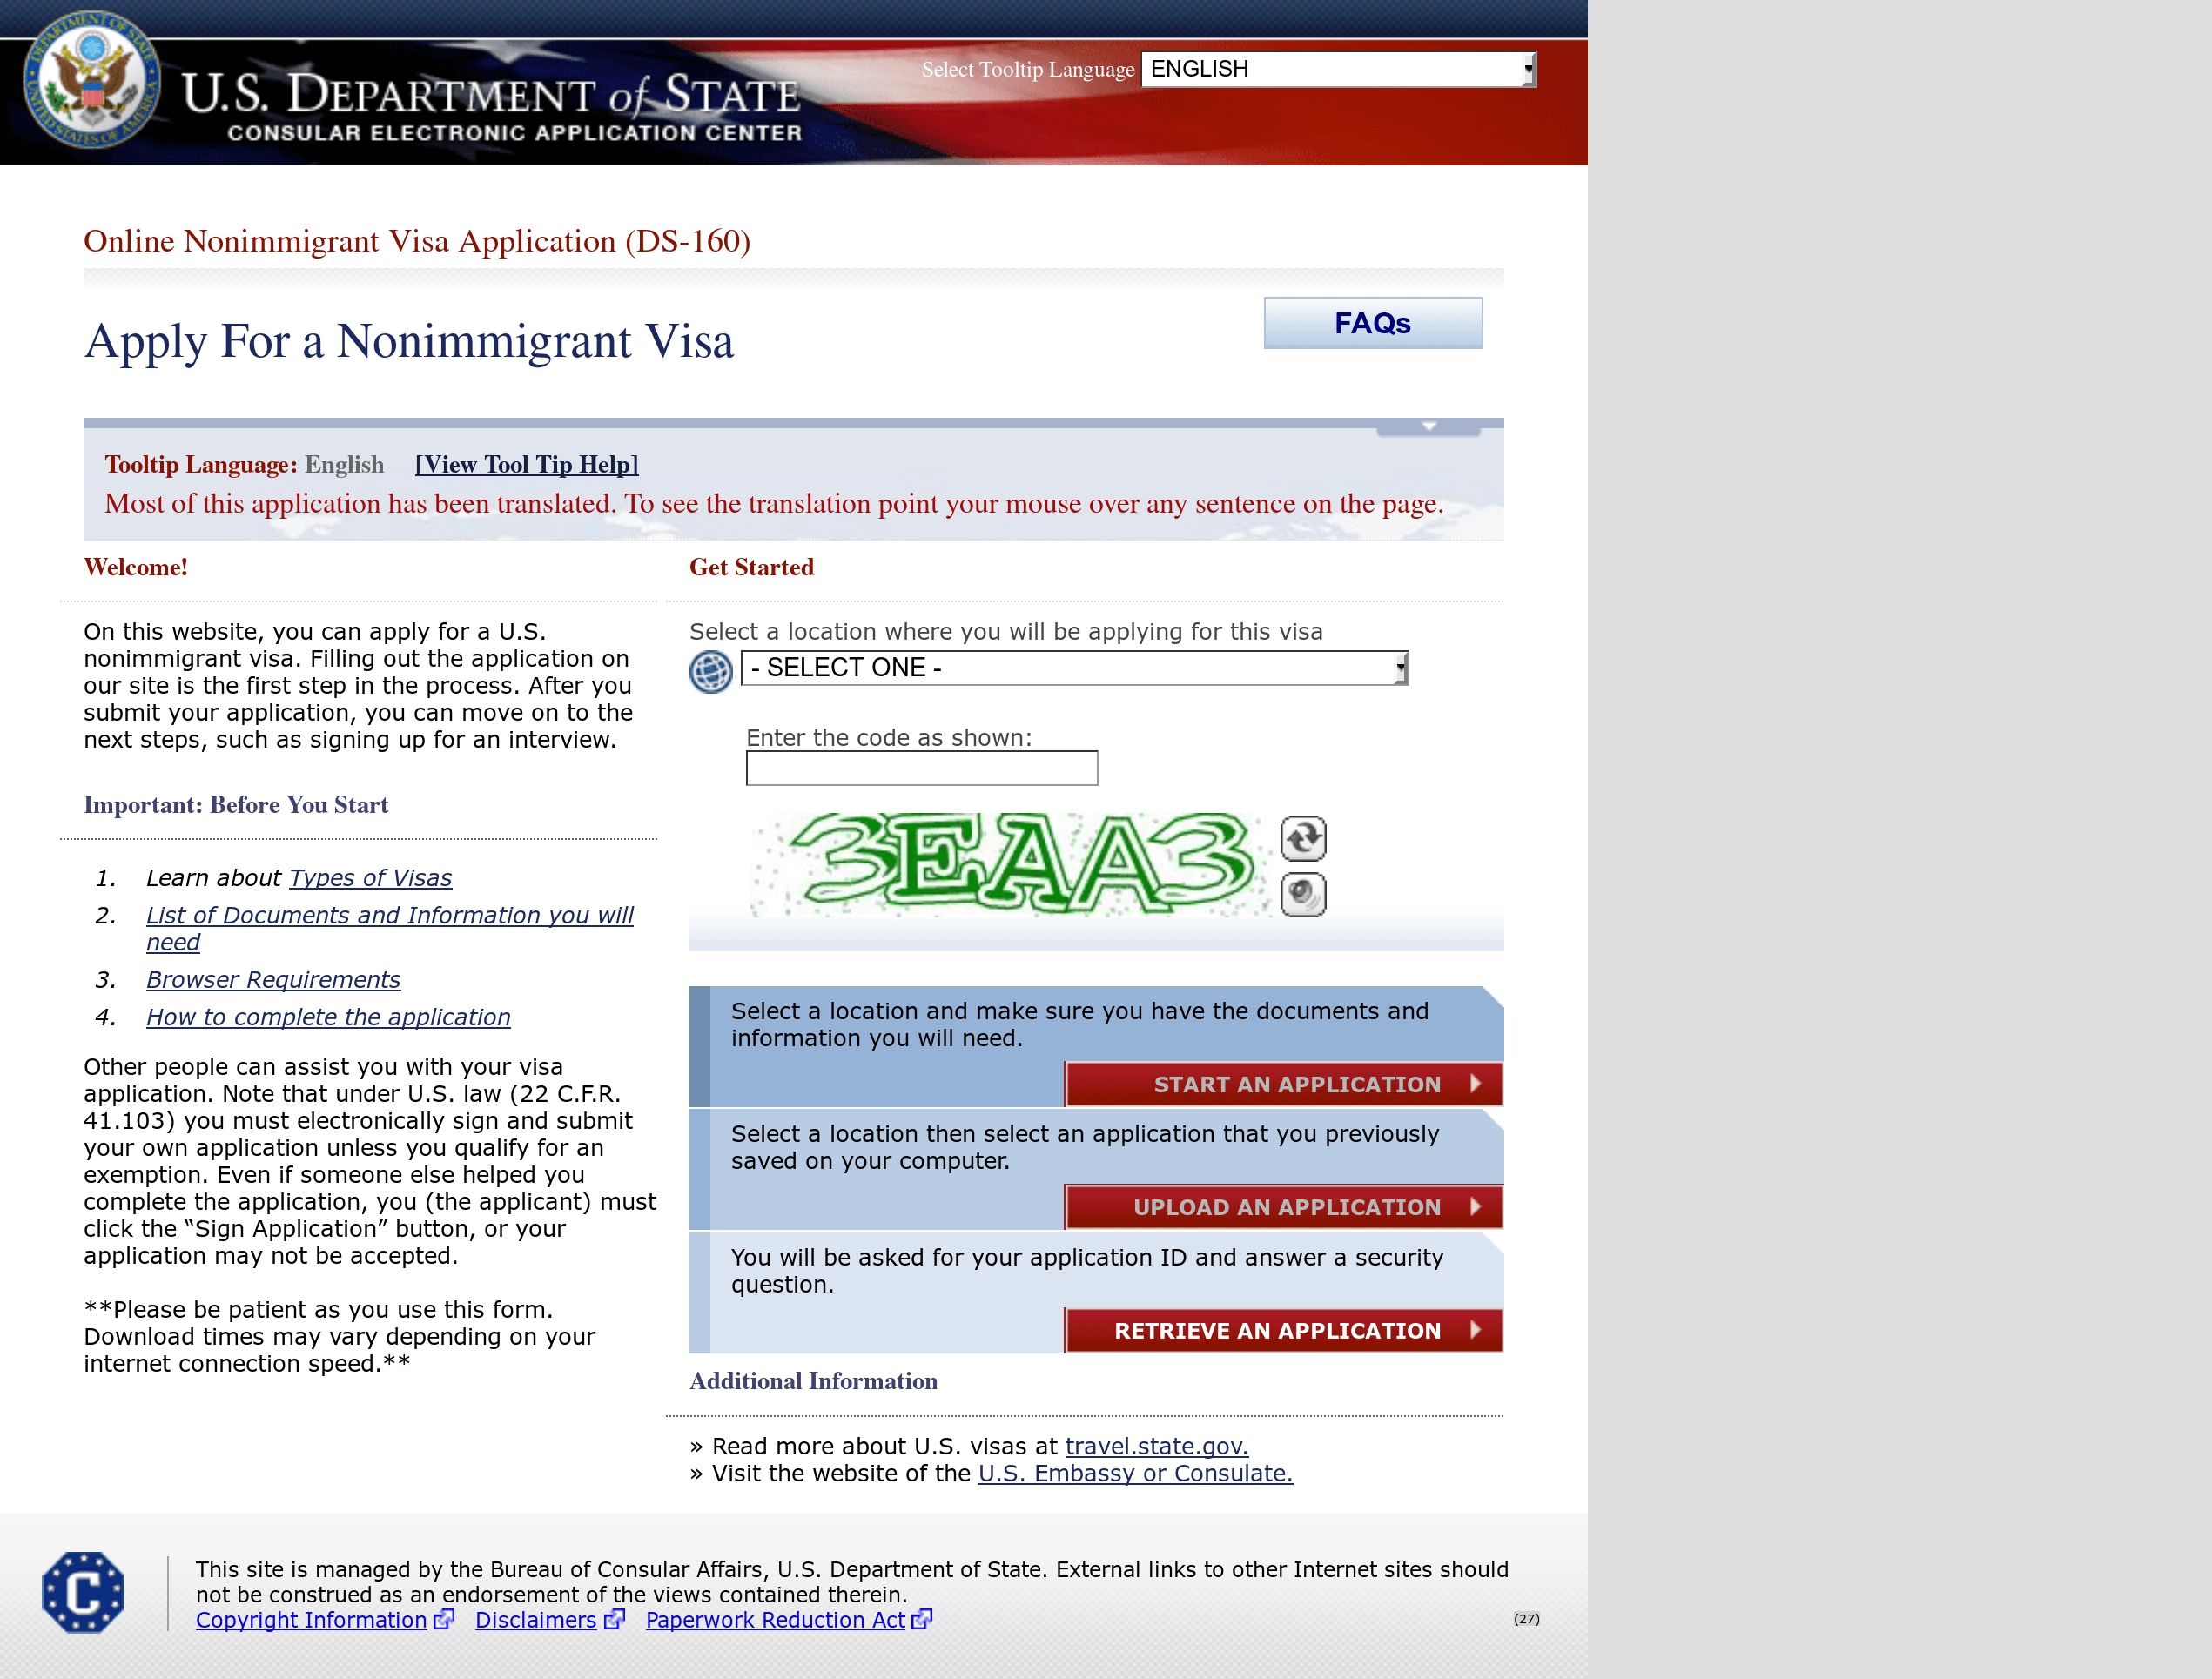 Screenshot of the DS-160 Web form